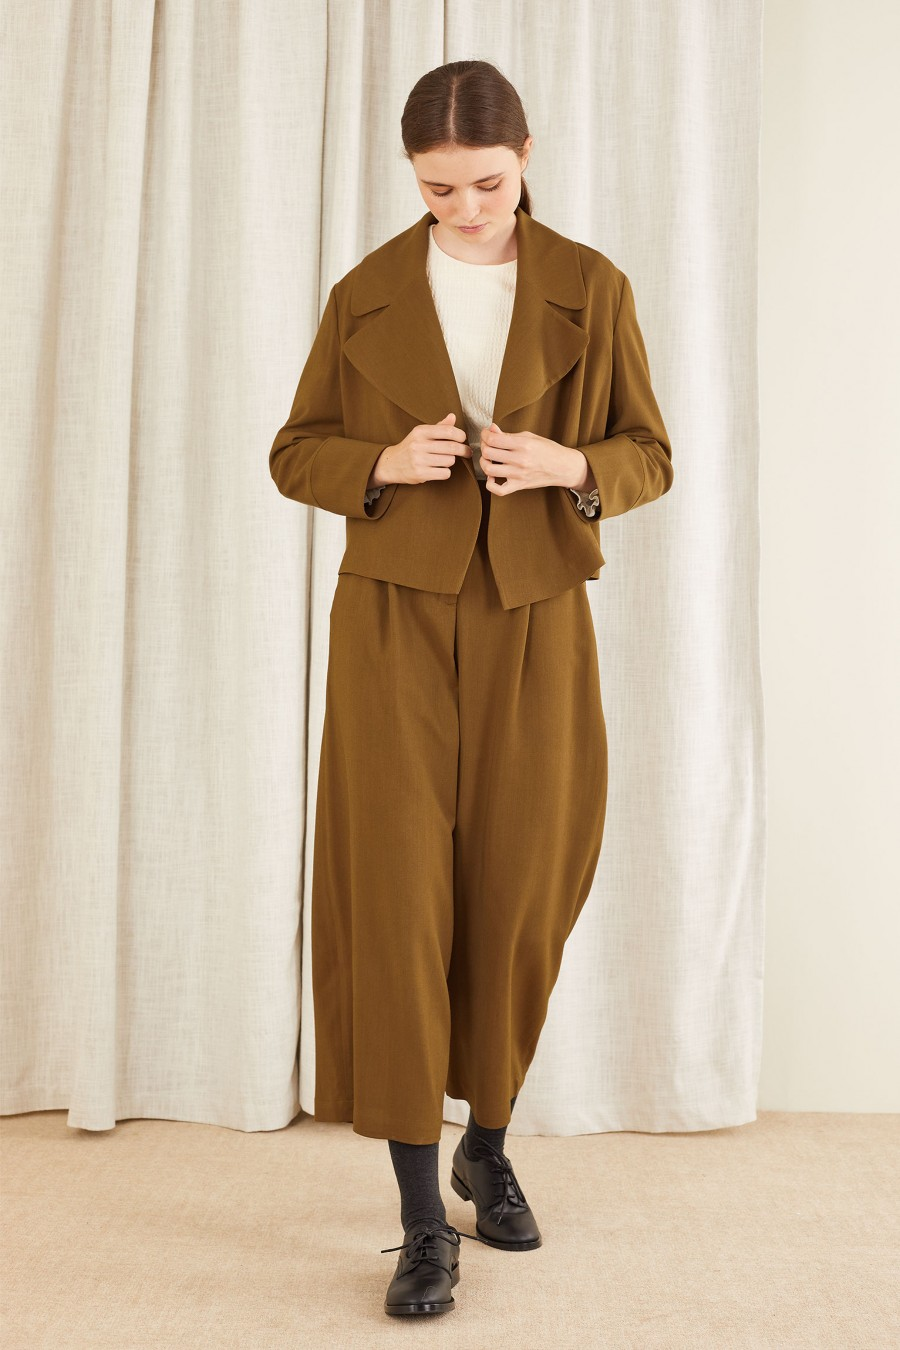 matching brown jacket and trousers